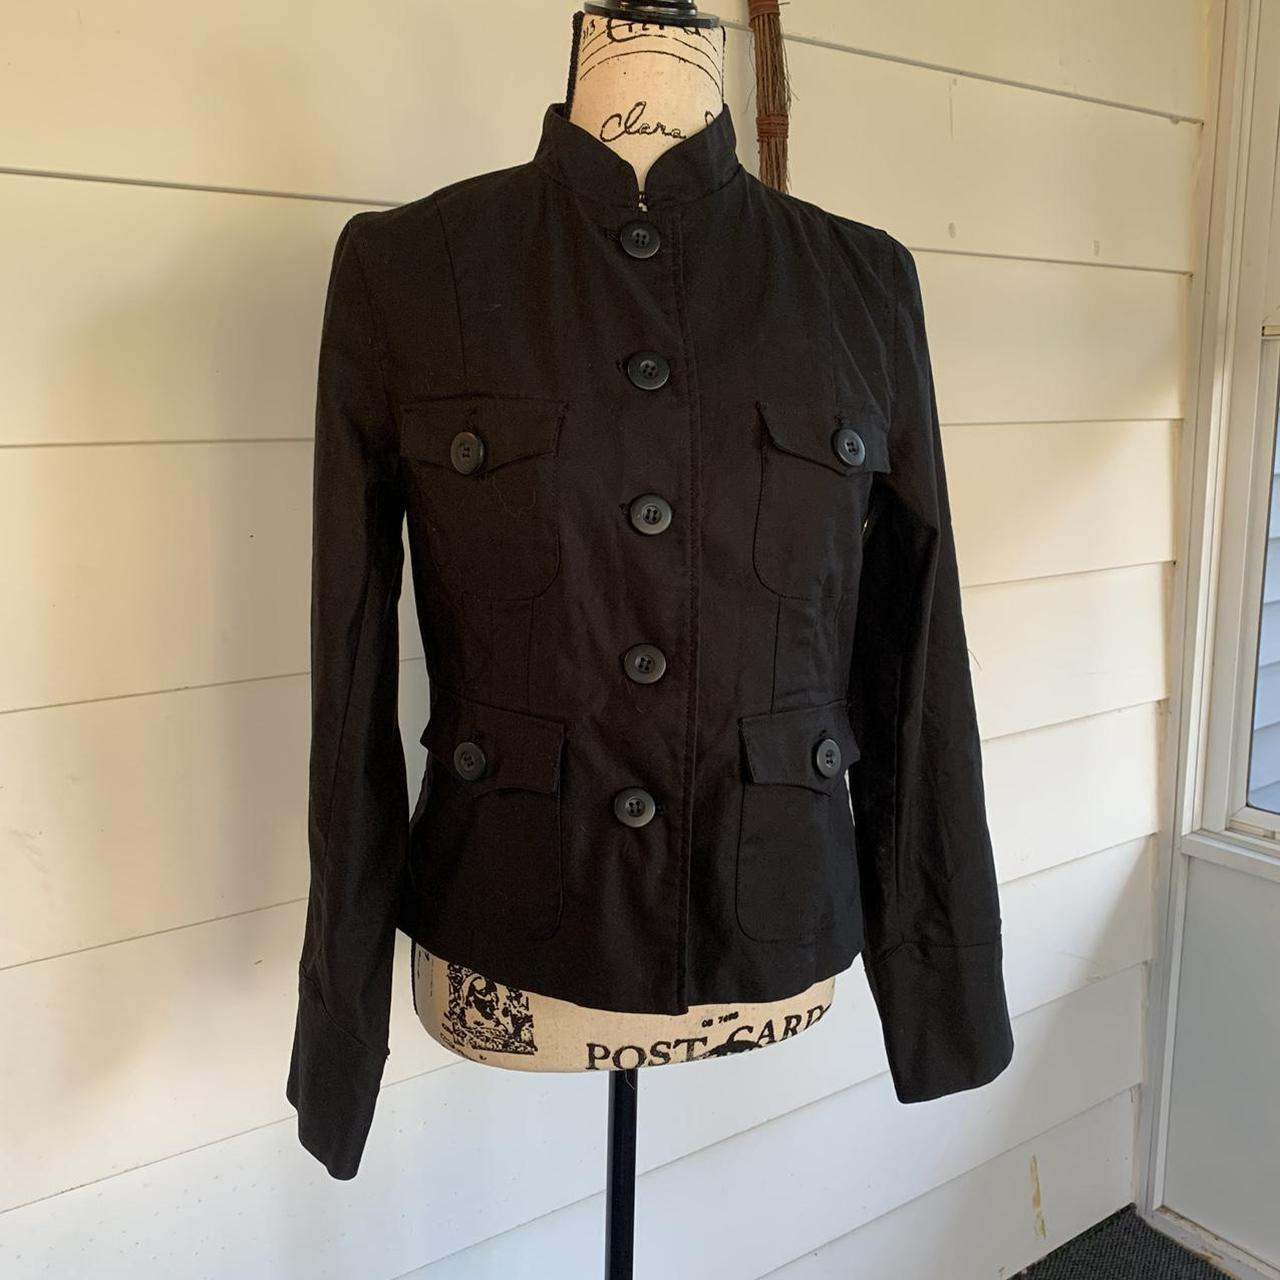 Product Image 1 - Morbid Threads Lined Jacket  Size: XL